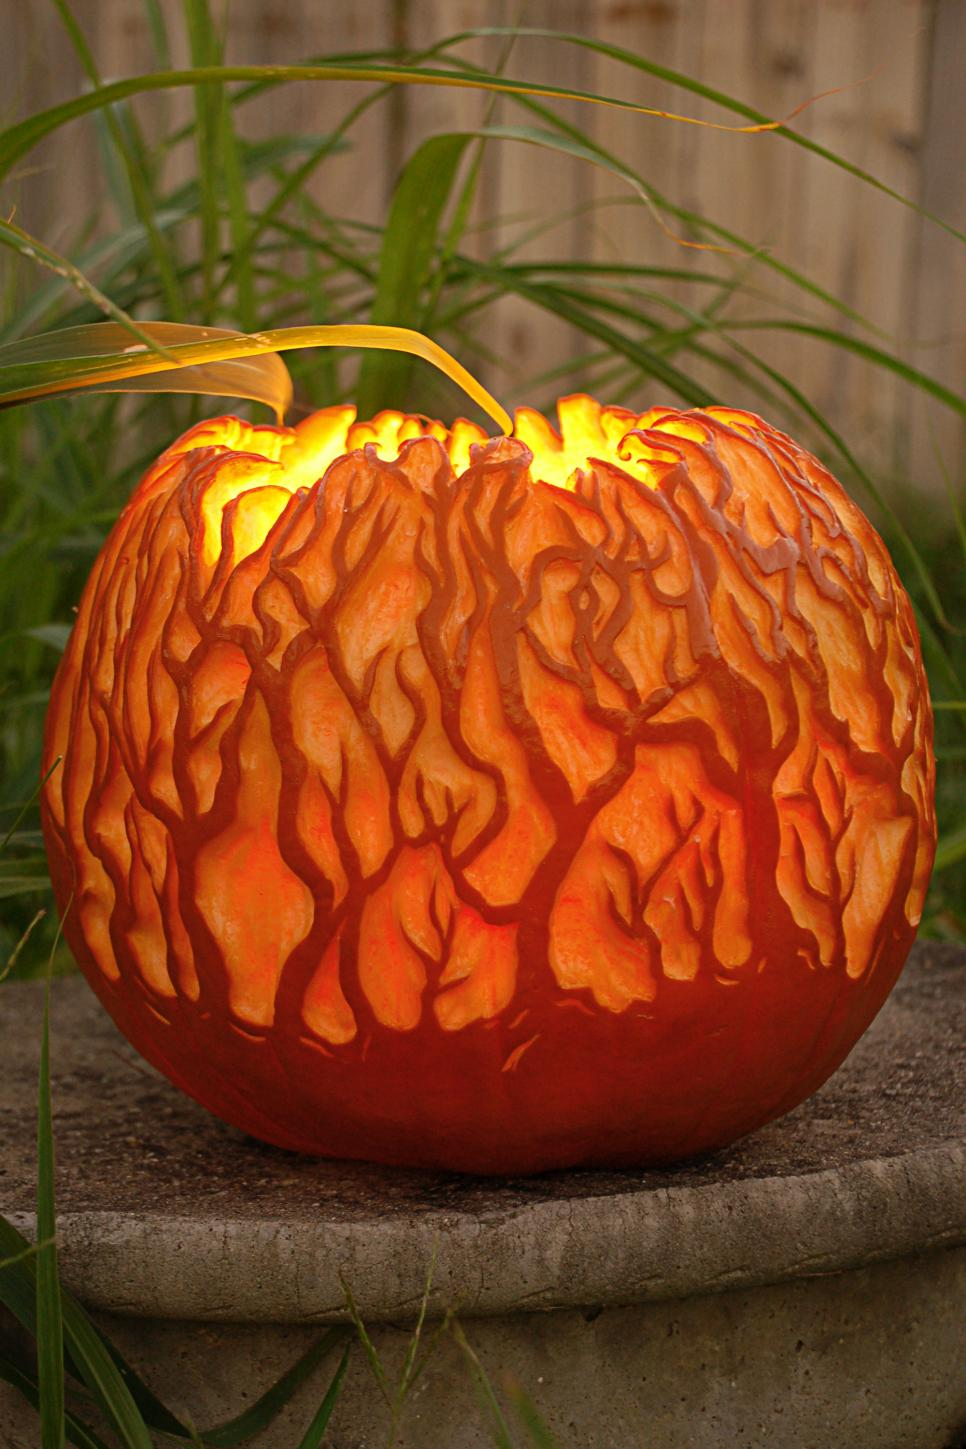 Pumpkin Carving 60 Easy Cool Diy Pumpkin Carving Ideas For Halloween 2017